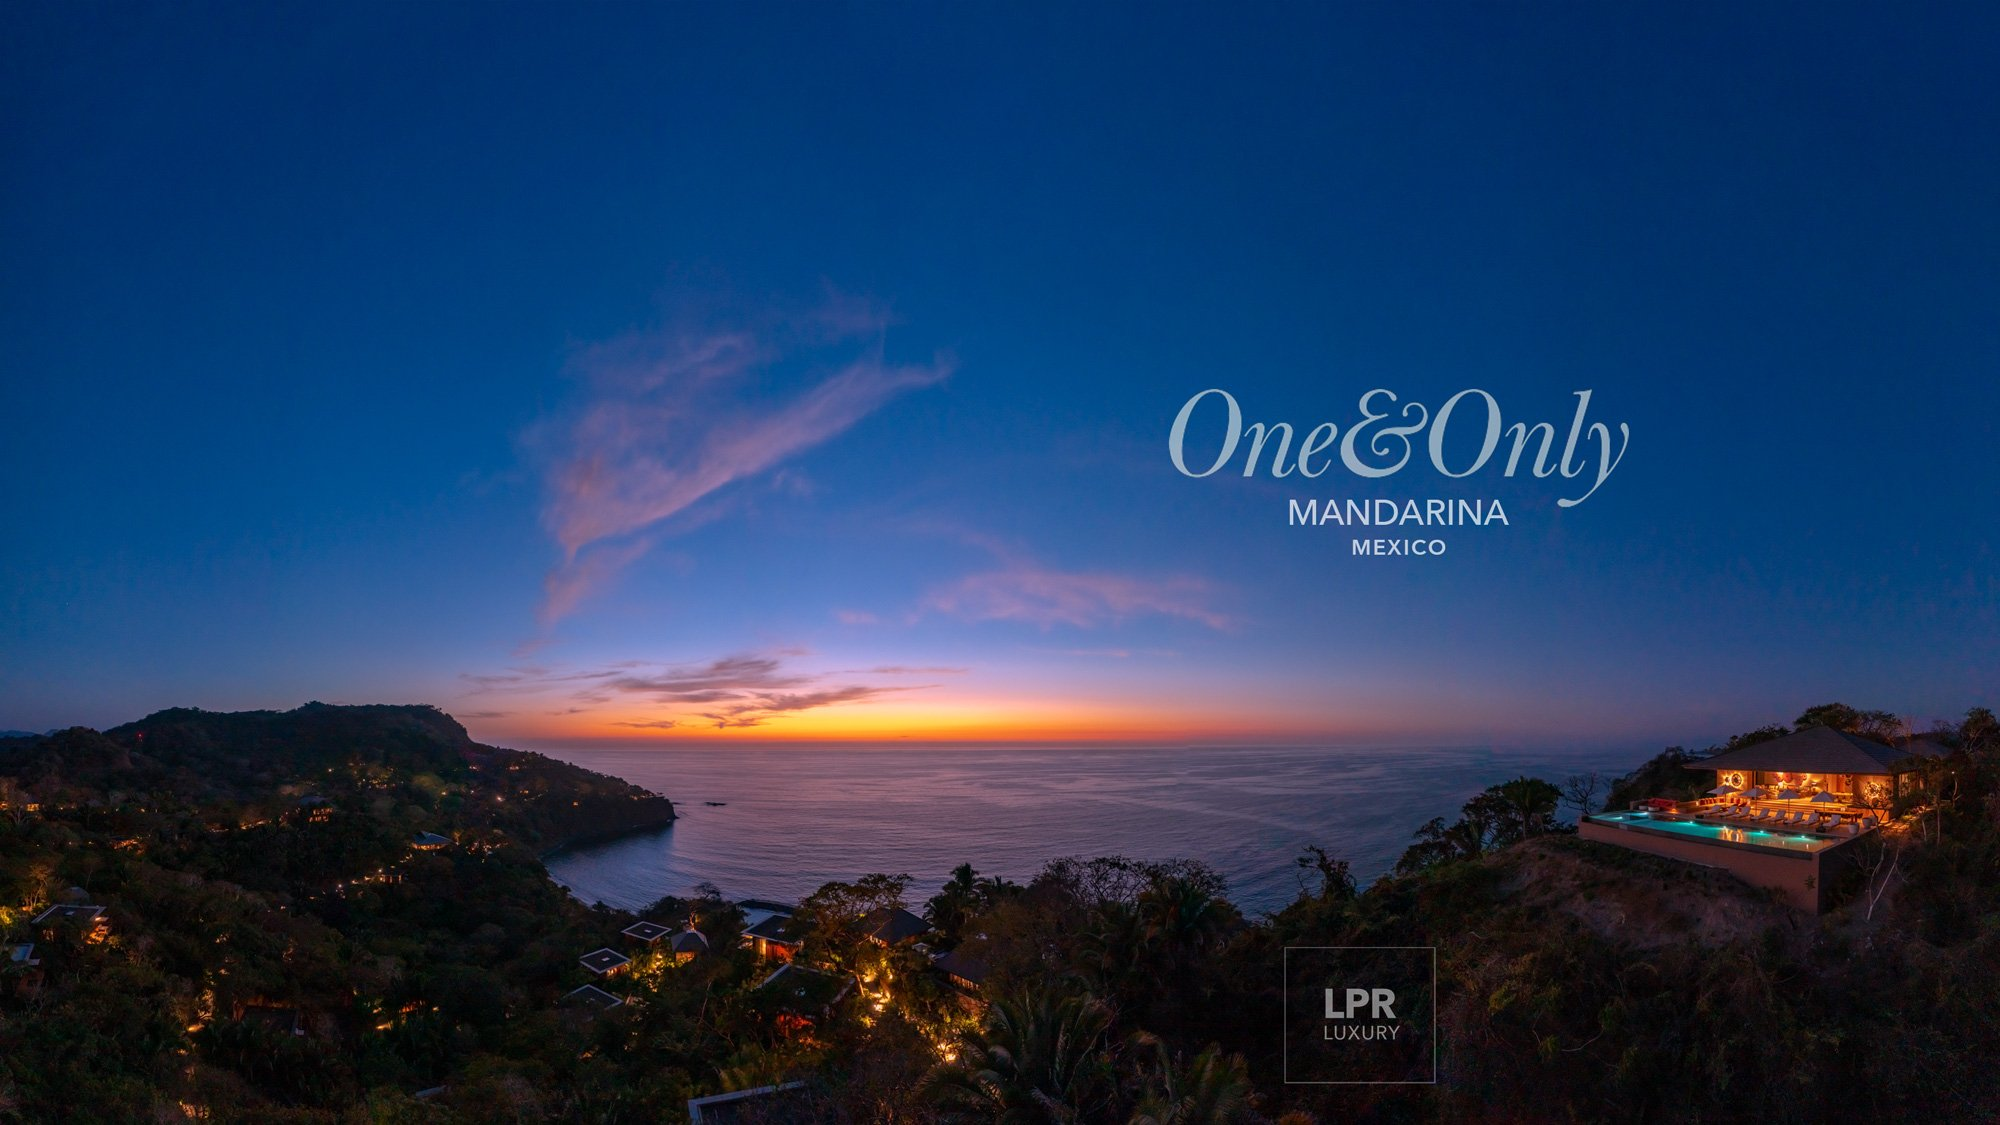 NEW: Private Homes at the One&Only Mandarina, Riviera Nayarit, Mexico - Luxury Puerto Vallarta / Punta de Mita real estate for sale.